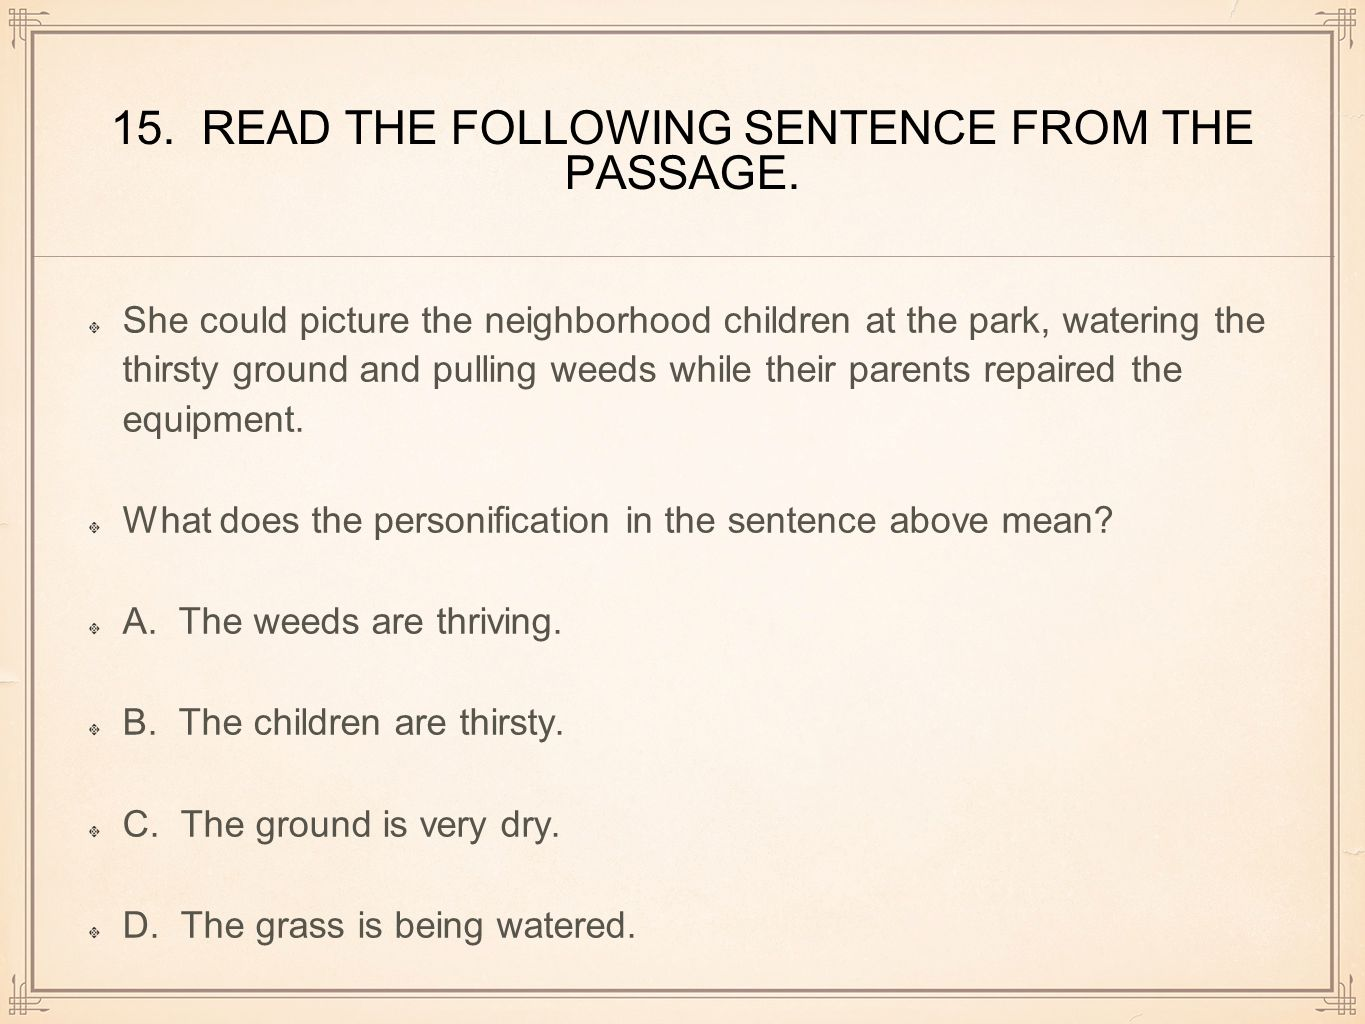 15. READ THE FOLLOWING SENTENCE FROM THE PASSAGE.